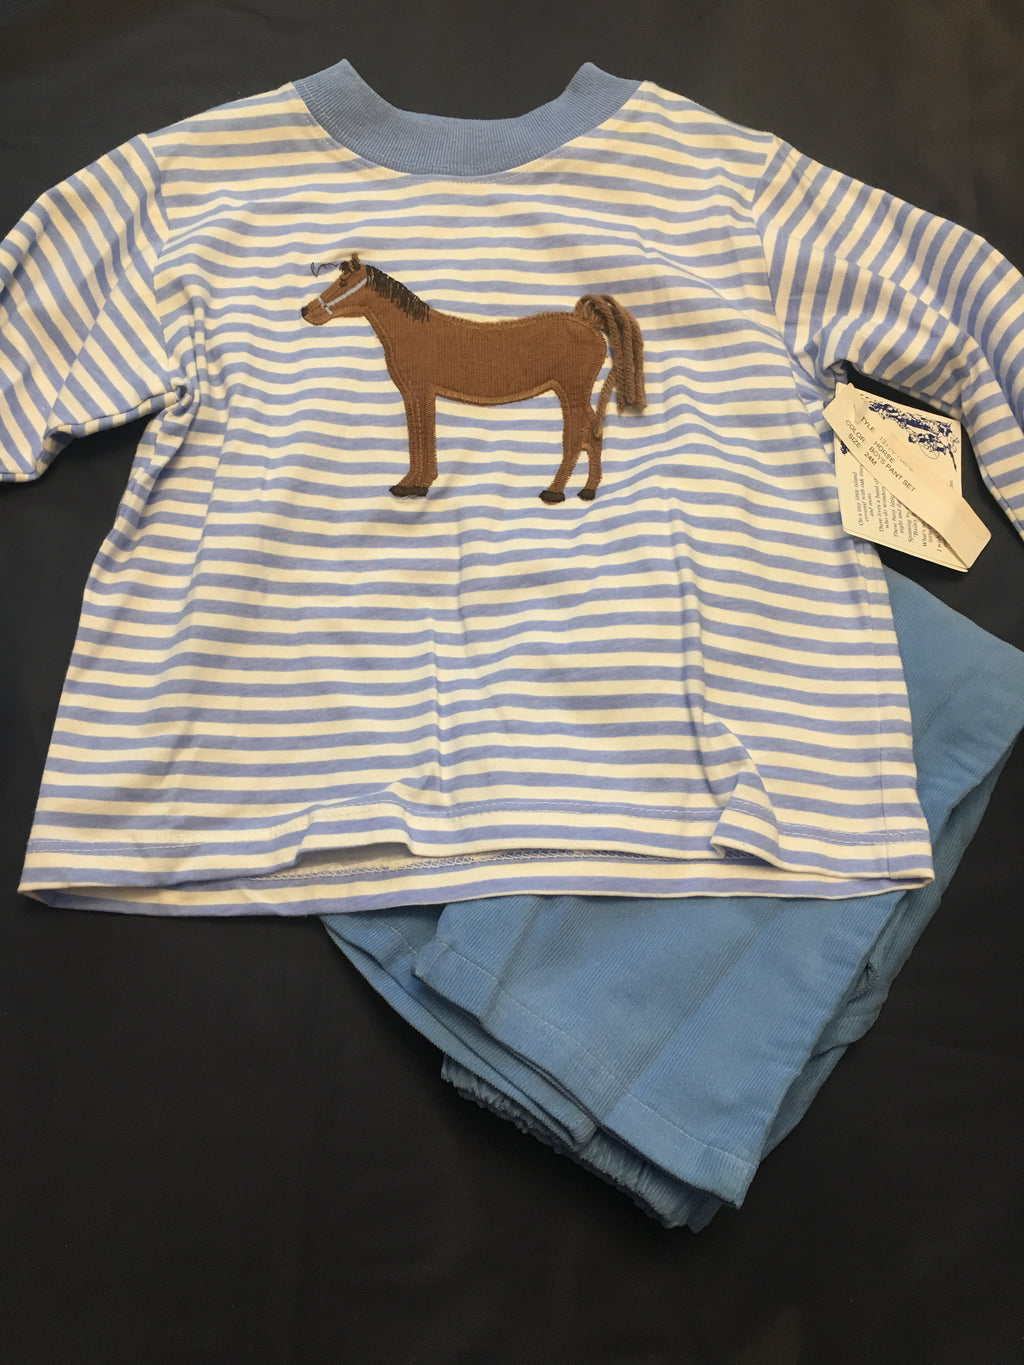 Boy horse long sleeve pant set 24m